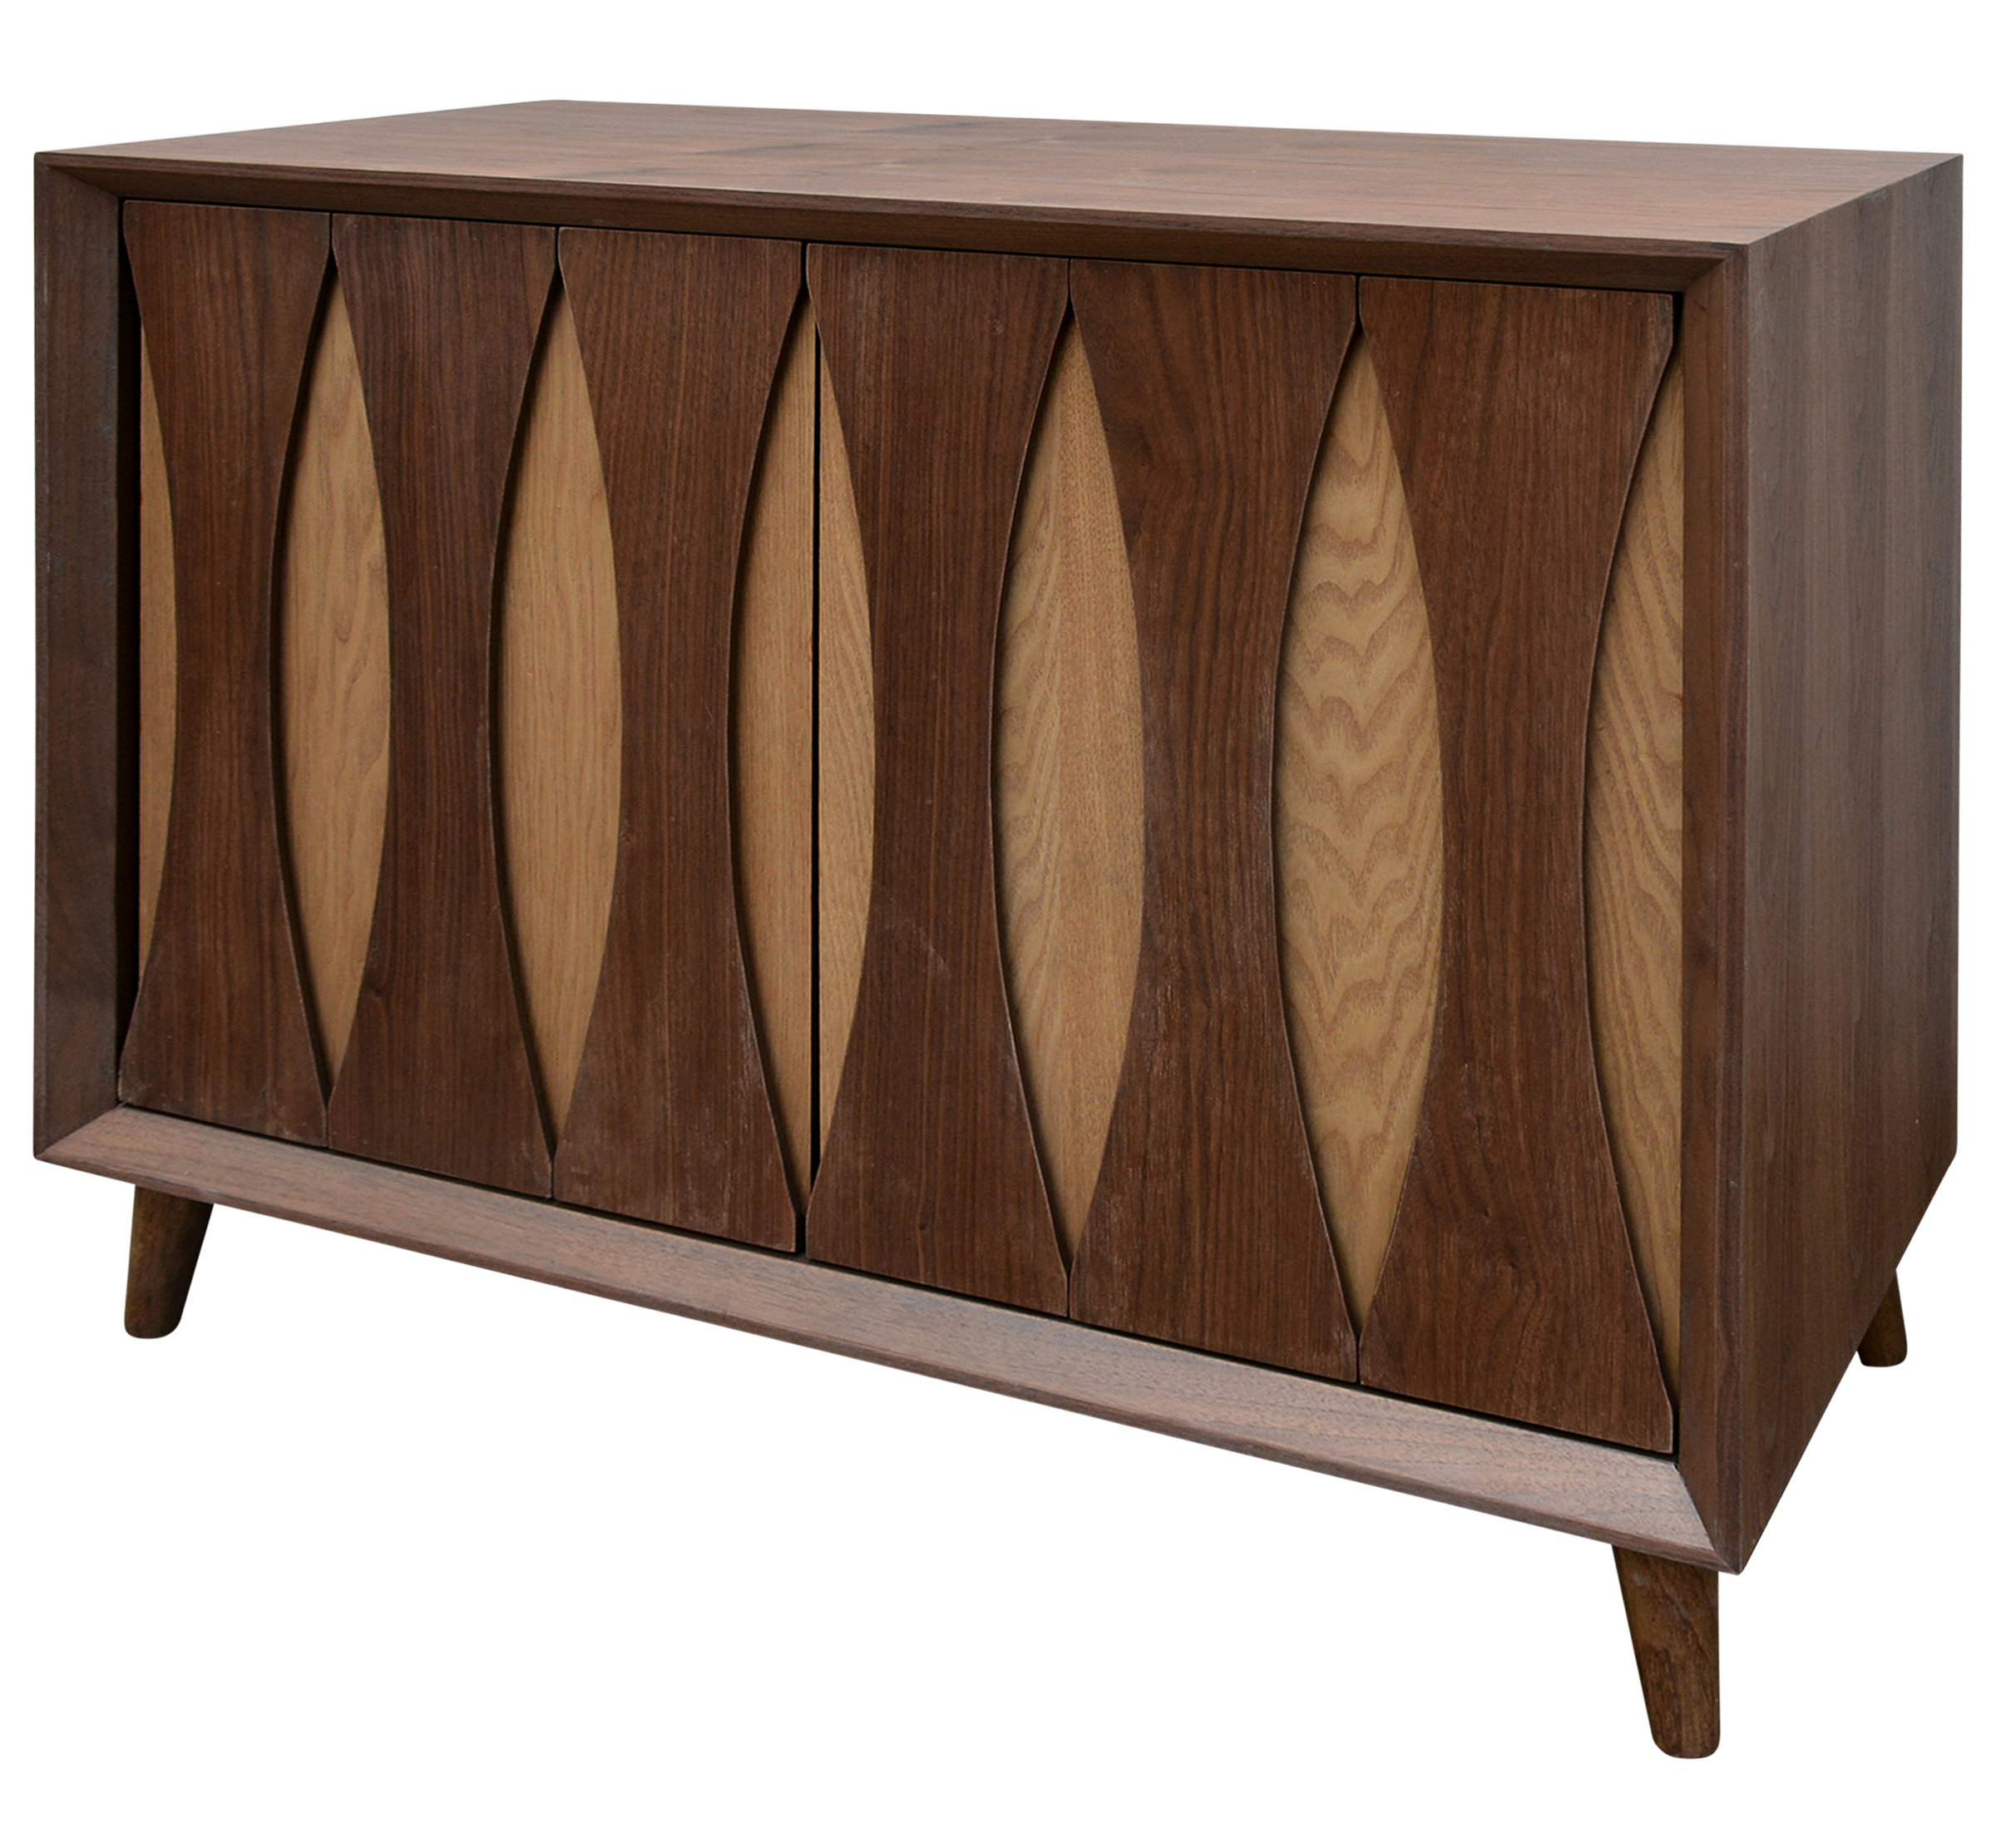 World Menagerie Armelle Sideboard & Reviews | Wayfair With Regard To Armelle Sideboards (Image 29 of 30)